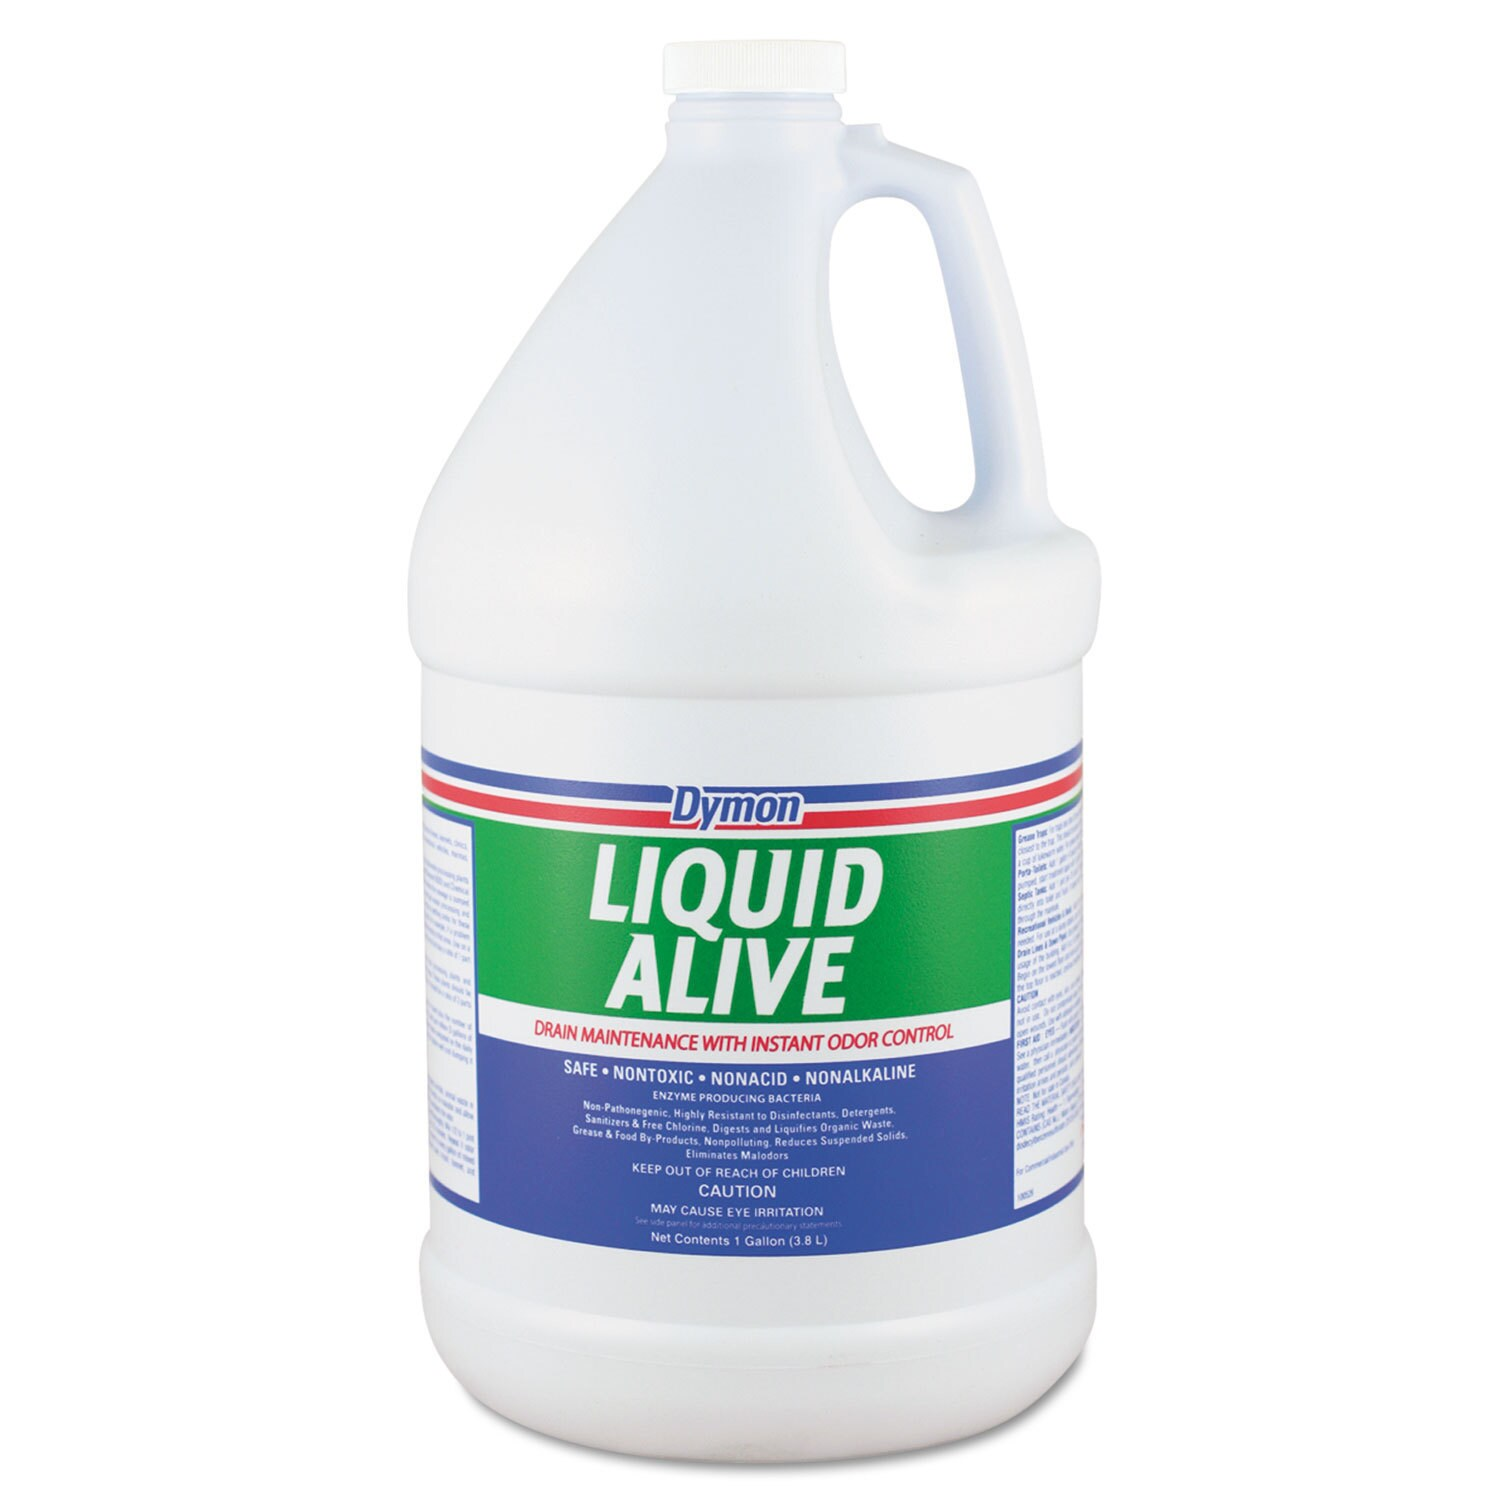 Dymon Liquid Alive Enzyme Producing Bacteria 1gal Bottle ...